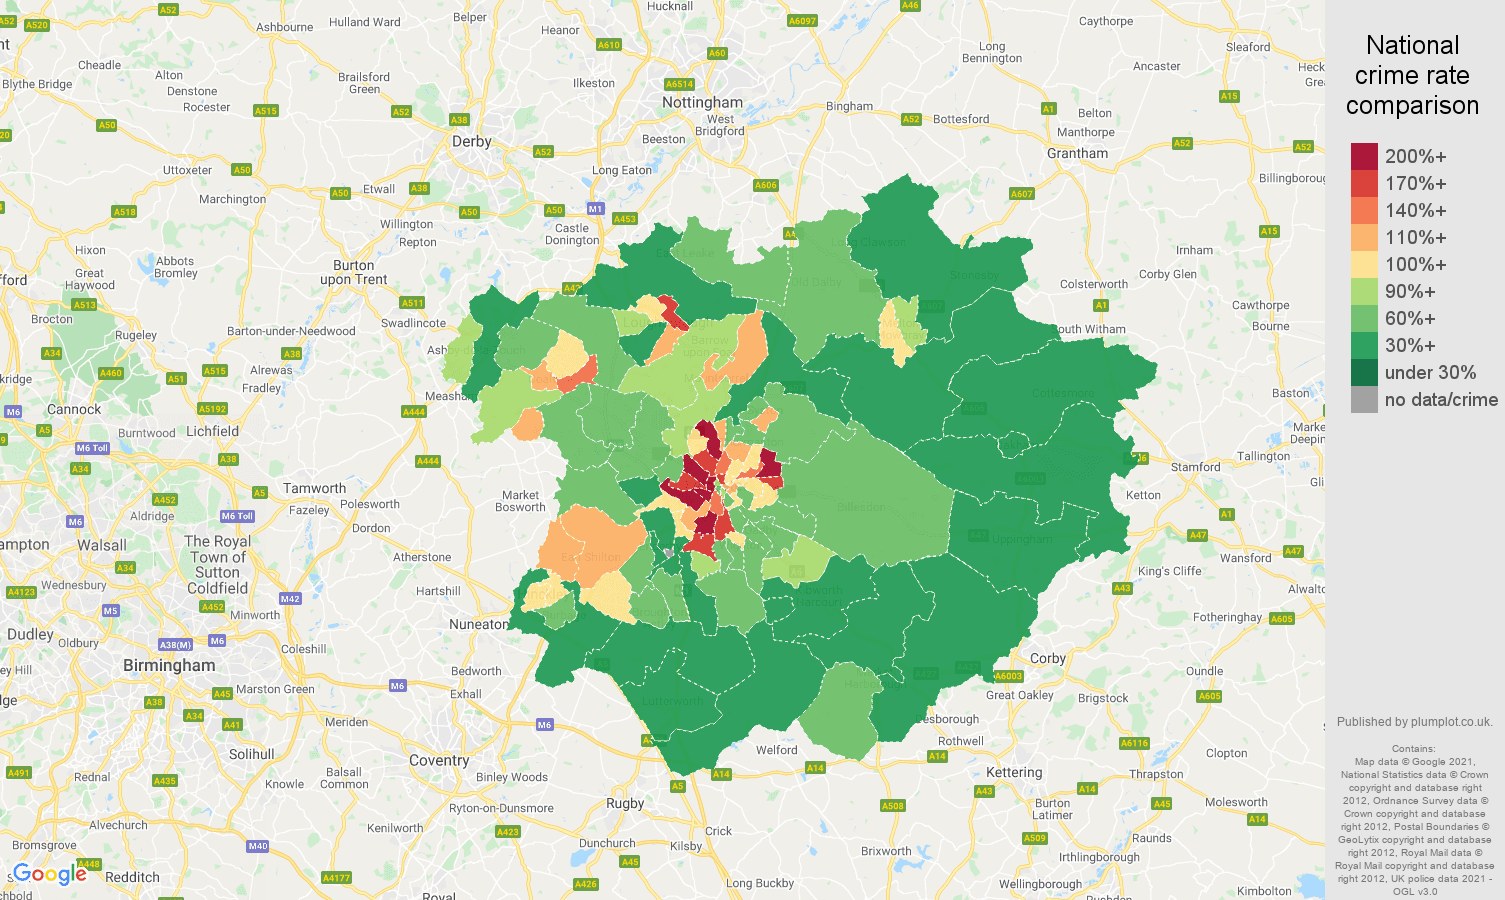 Leicester violent crime rate comparison map